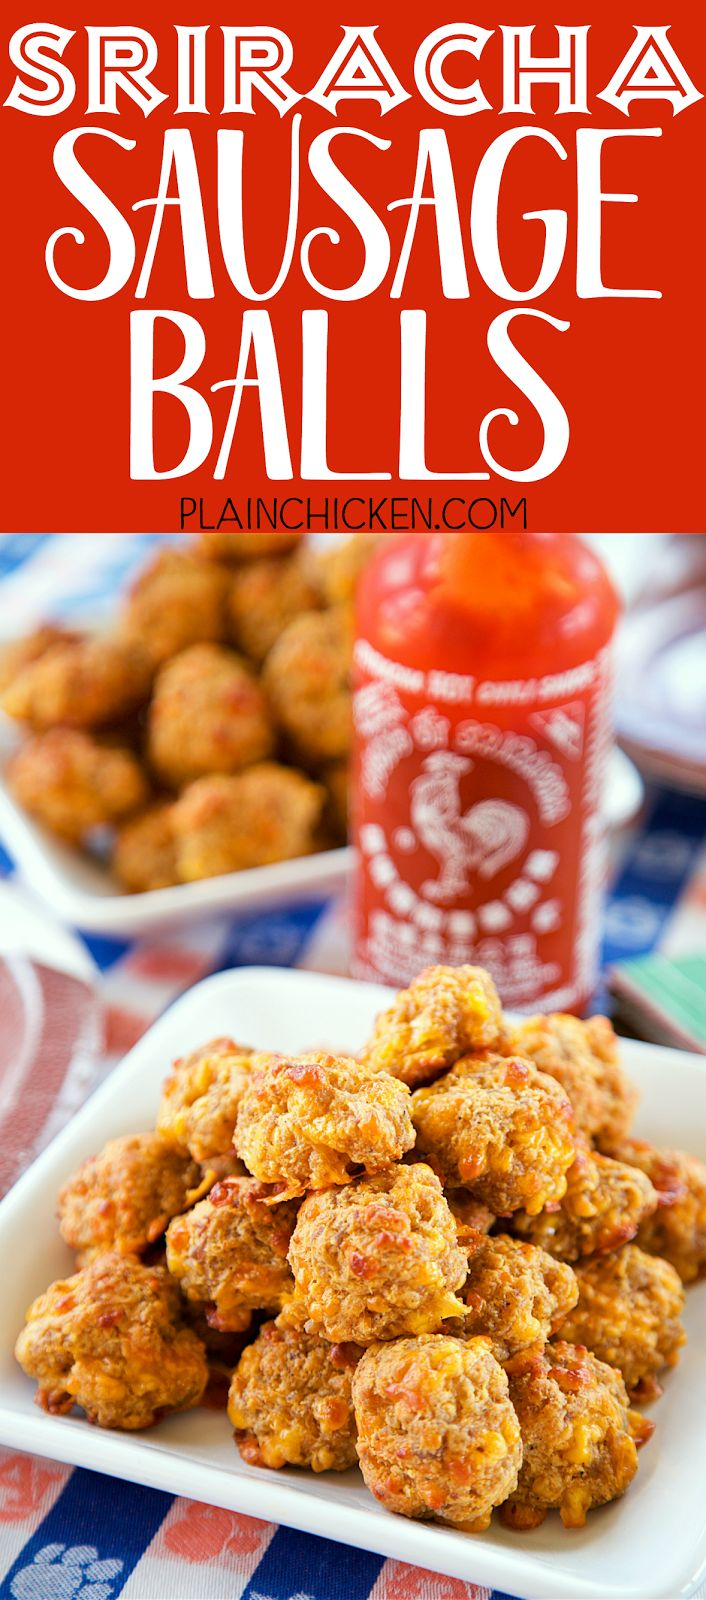 Sriracha Sausage Balls - THE BEST! Great for parties! You can mix together and freezer for later. Sausage, bisquick, cream cheese, cheddar cheese and sriracha. We always have some in the freezer! SO good!